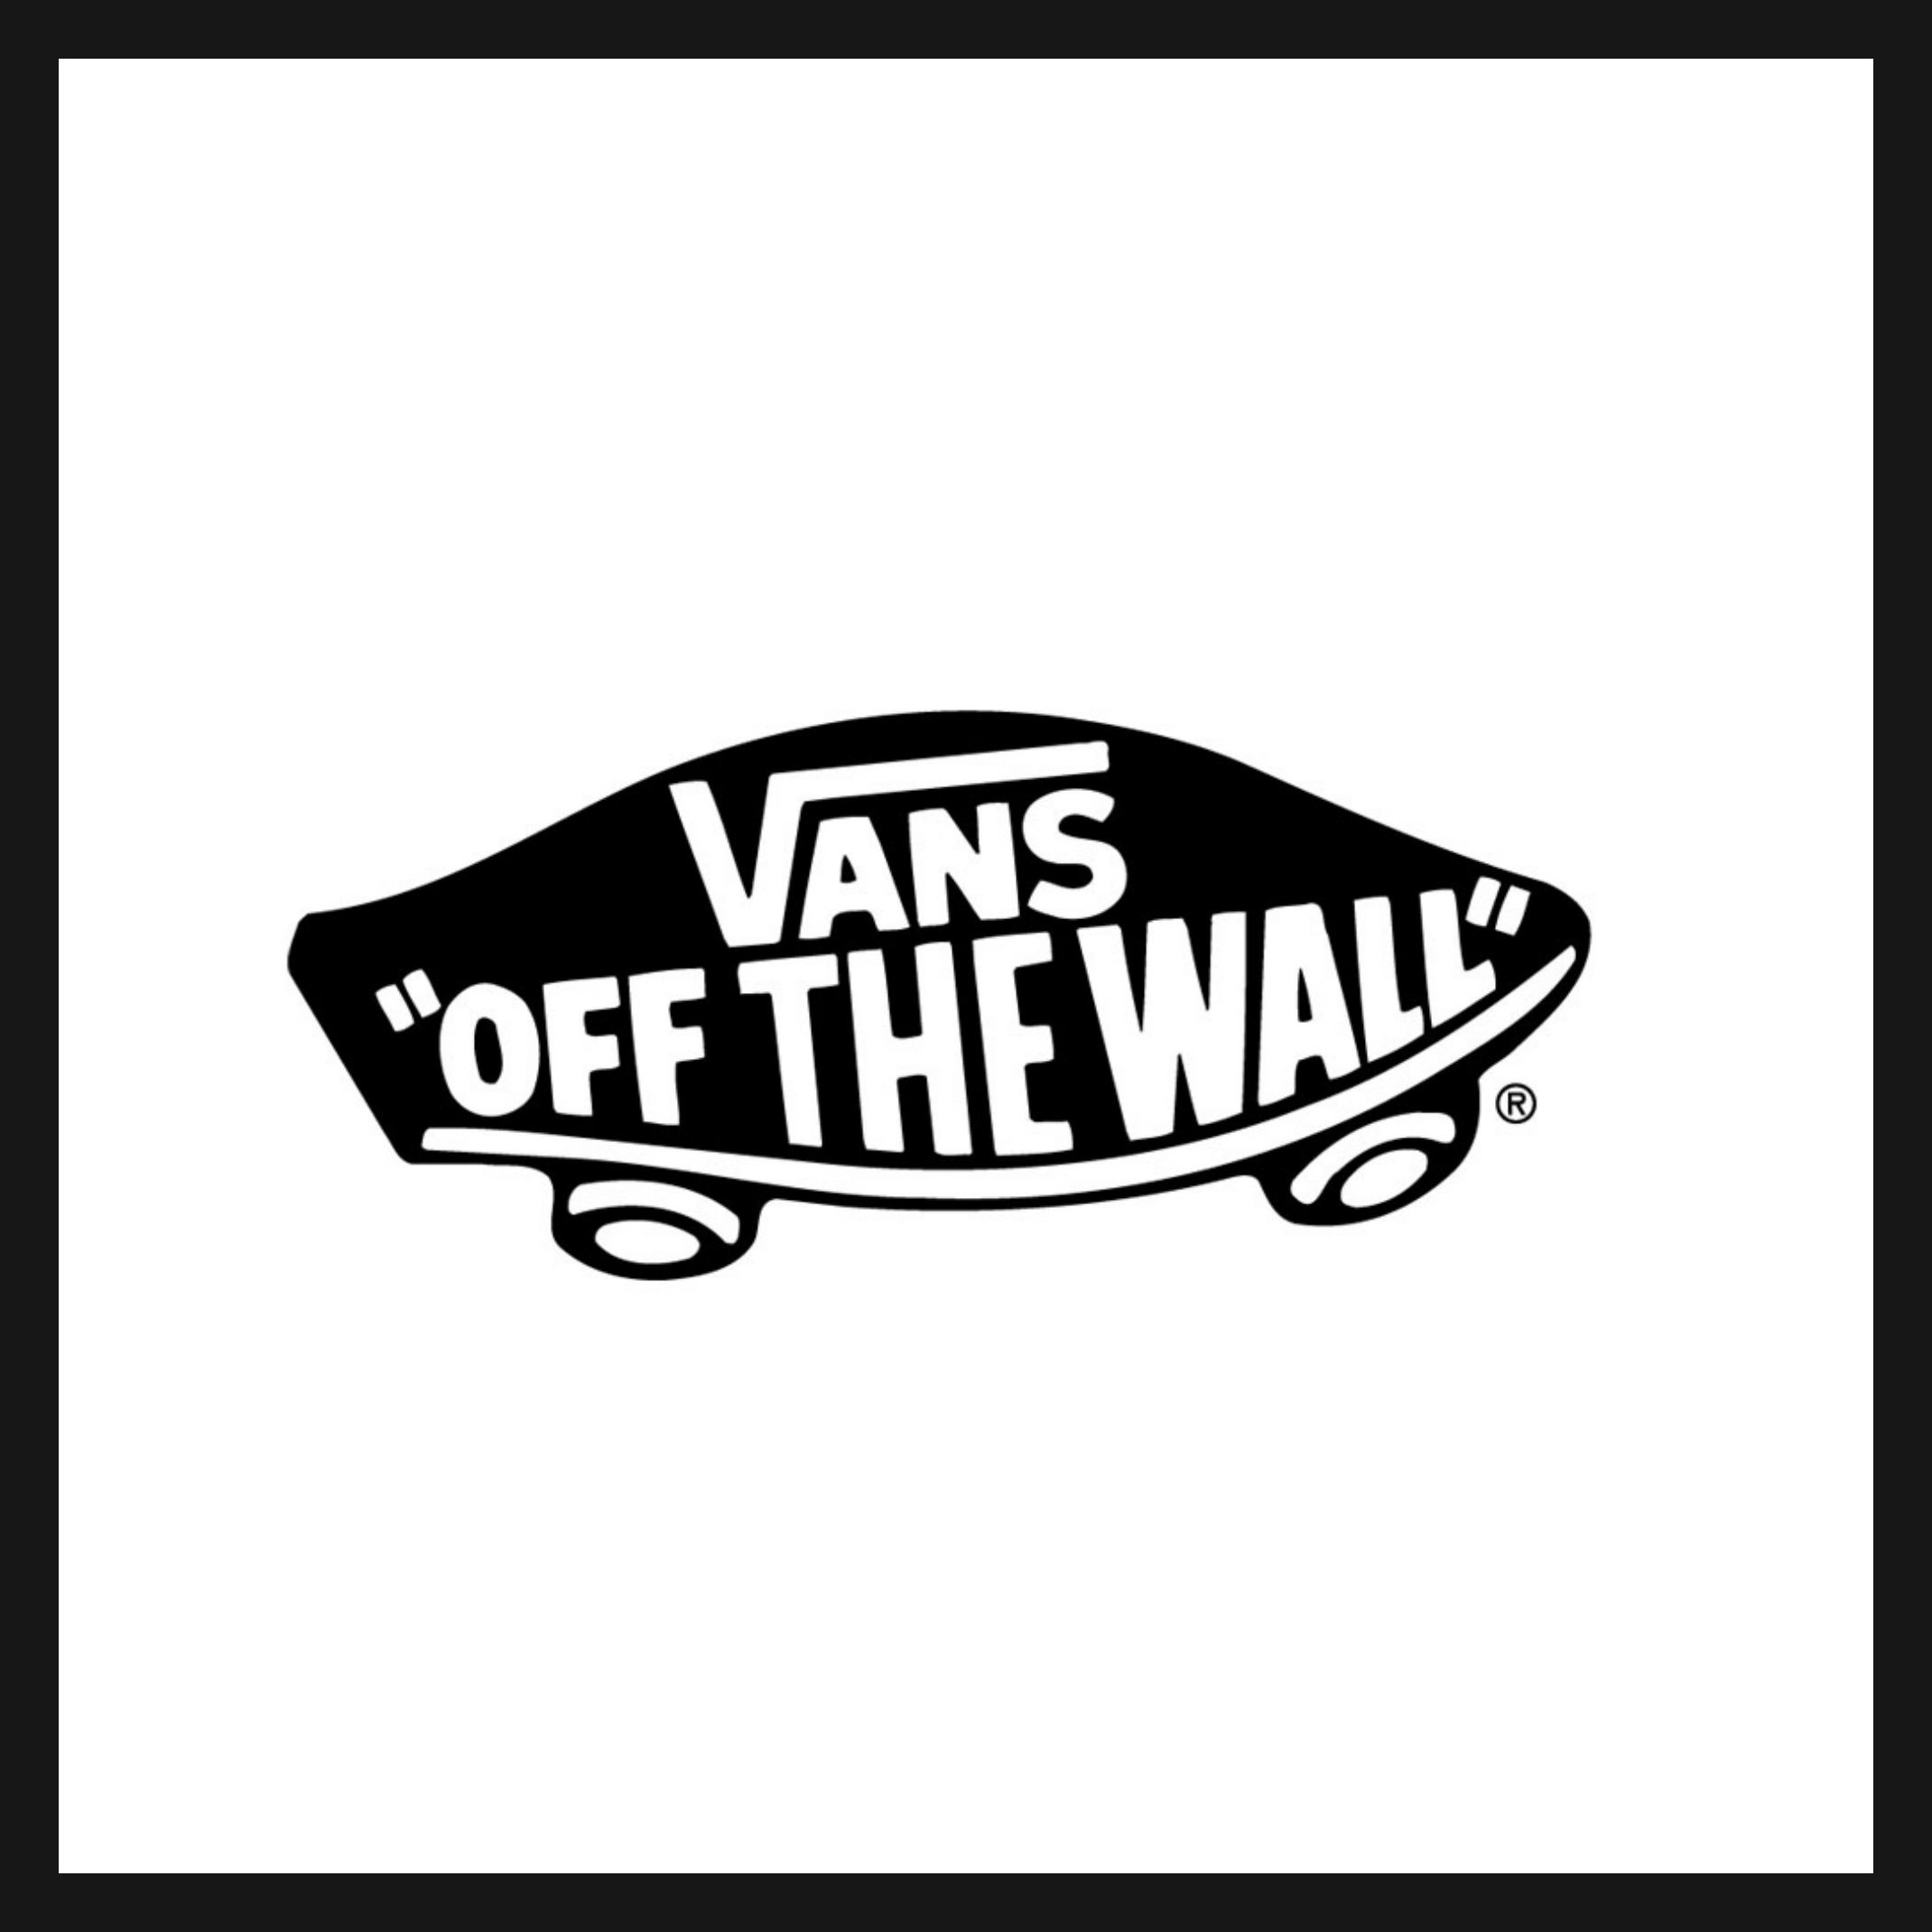 Drawn vans vans logo Vans Build To How Draw